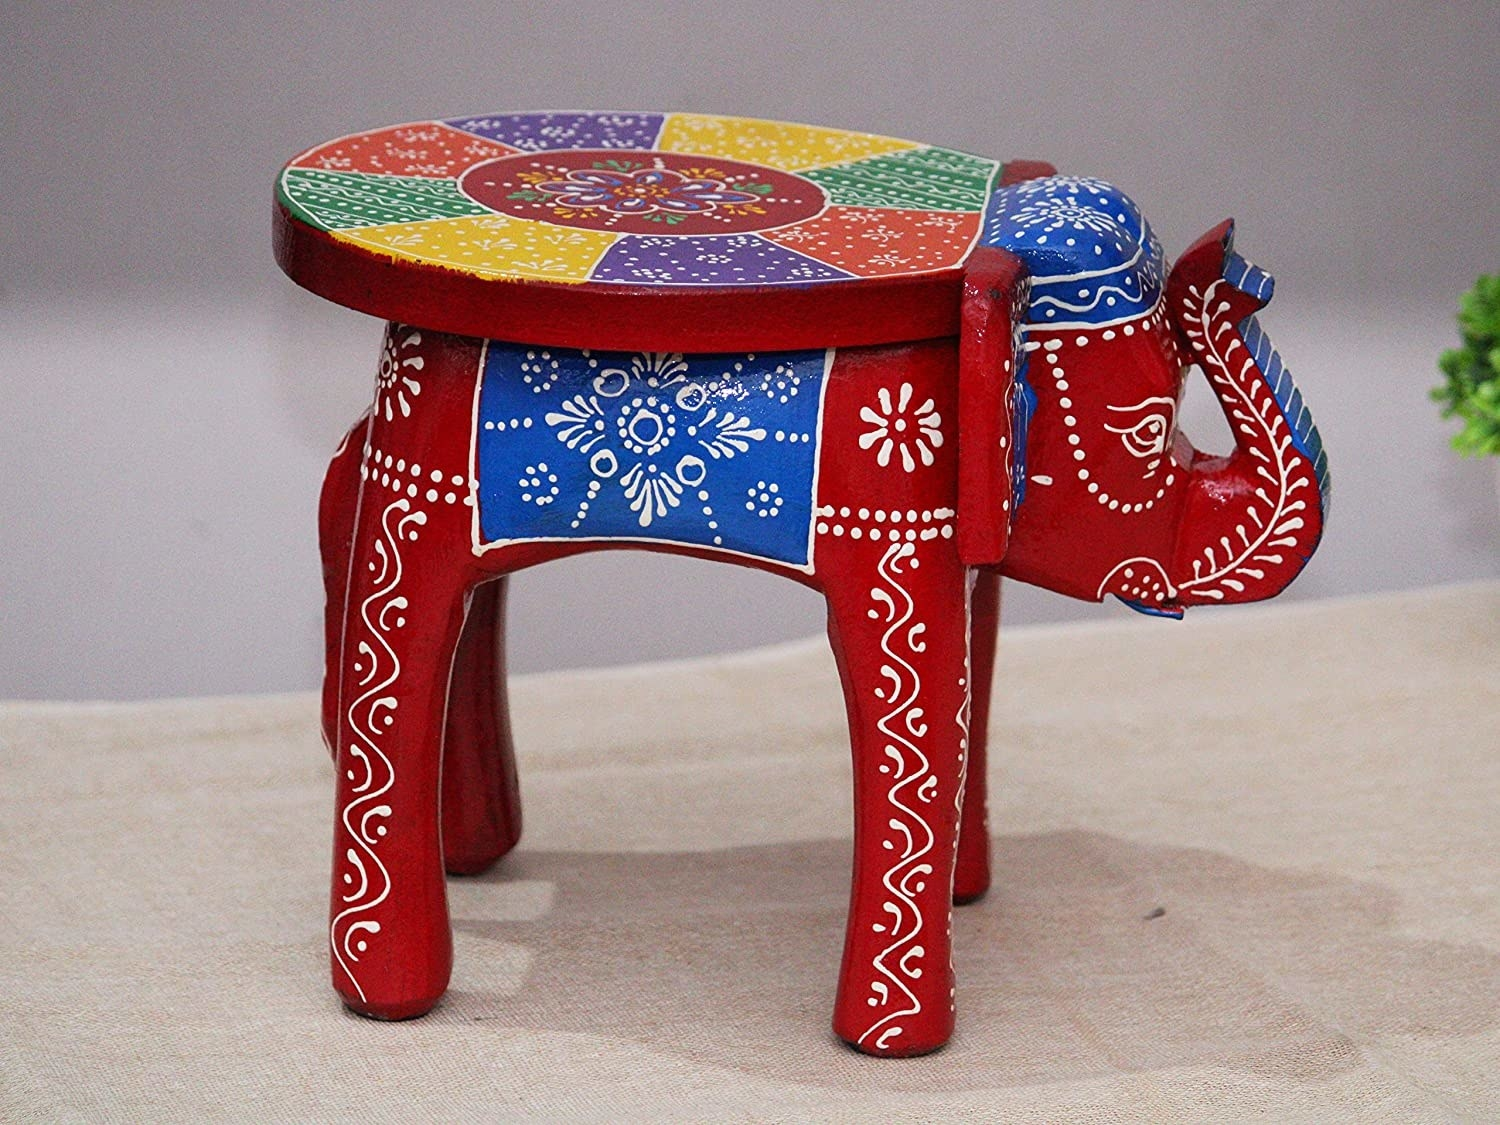 A colourful stool built in the shape of an elephant